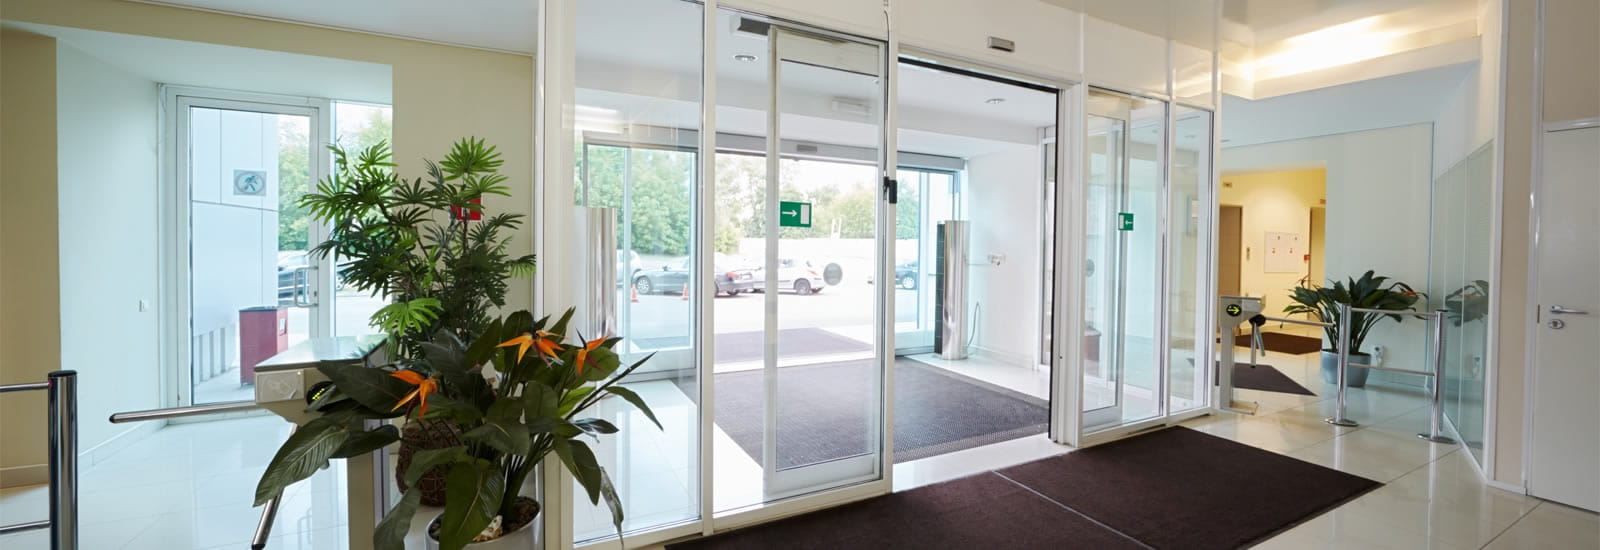 Commercial Glass & Aluminium Doors